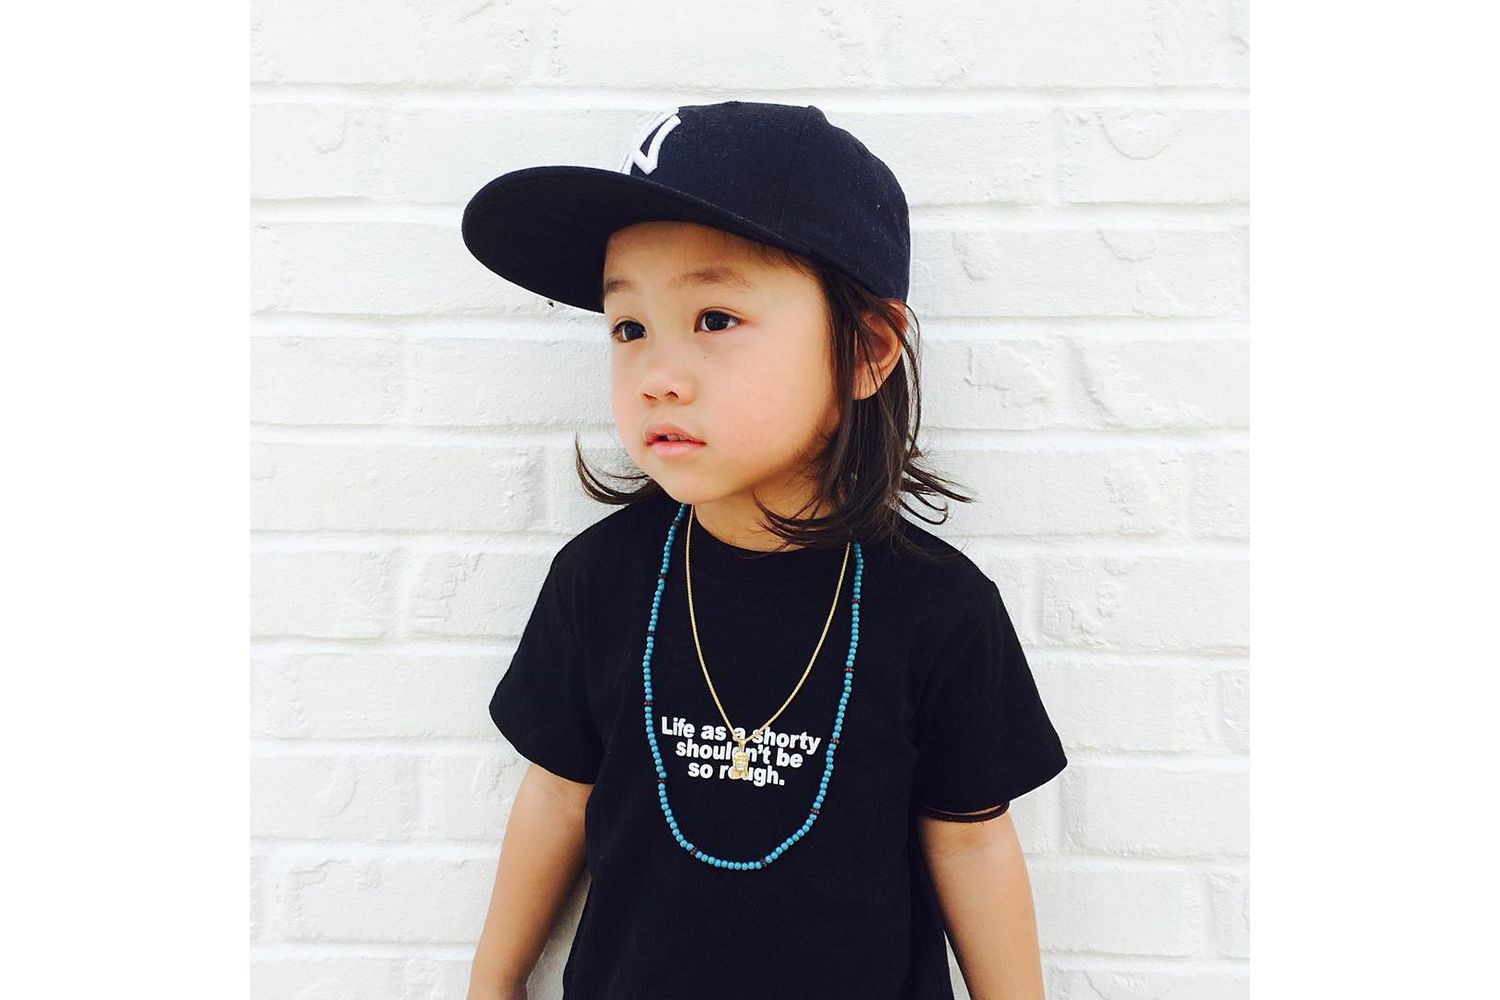 Parody-minded imprint Little Giants is aiming to keep your kids looking just as fresh — if not fresher than — you are.